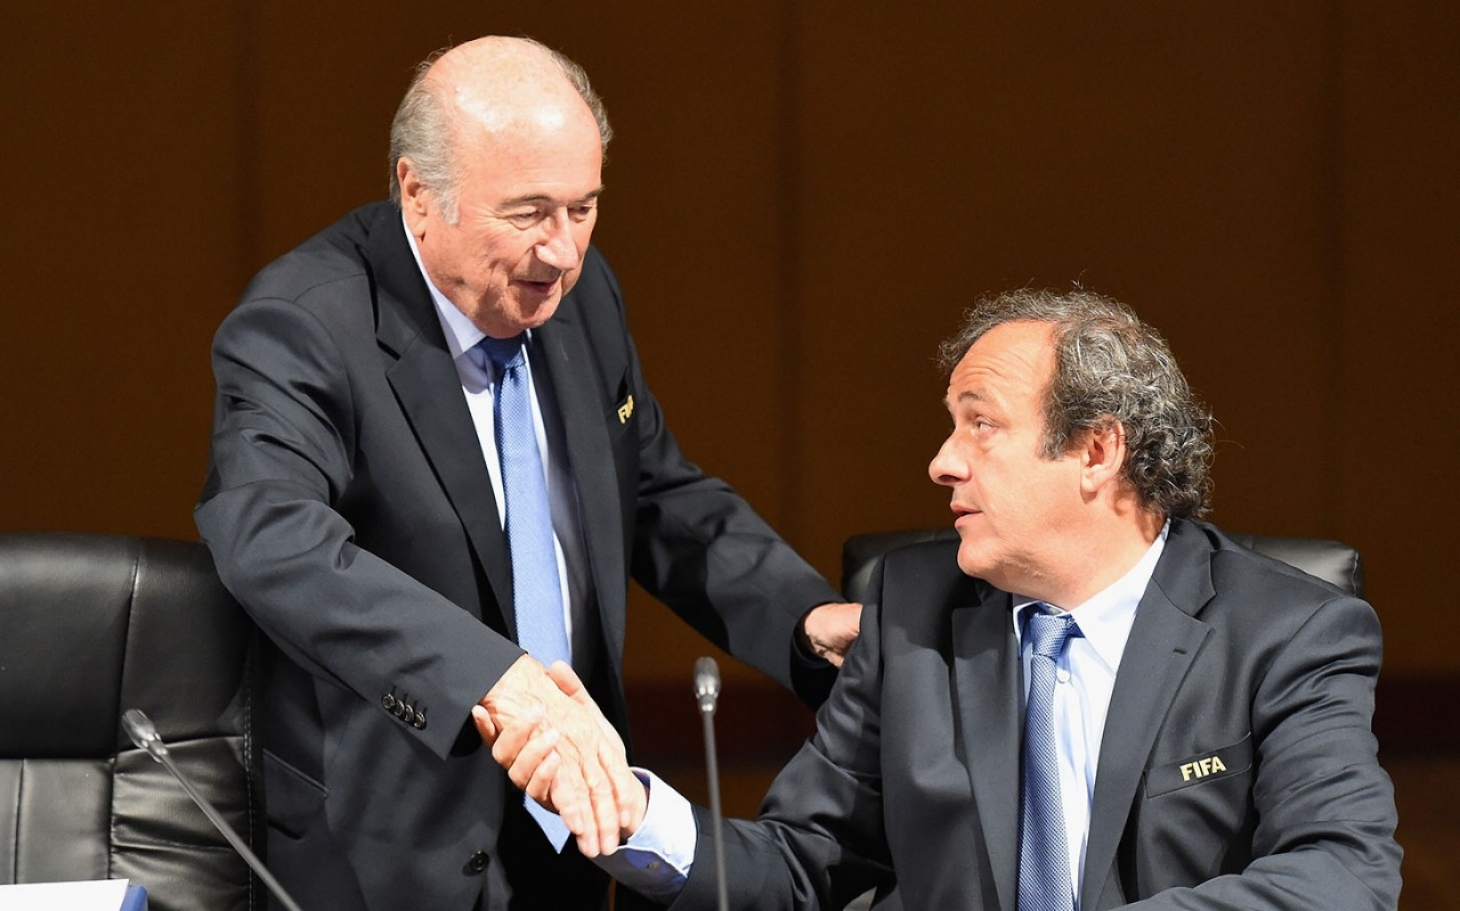 FIFA Suspends Blatter and Platini for 90 Days